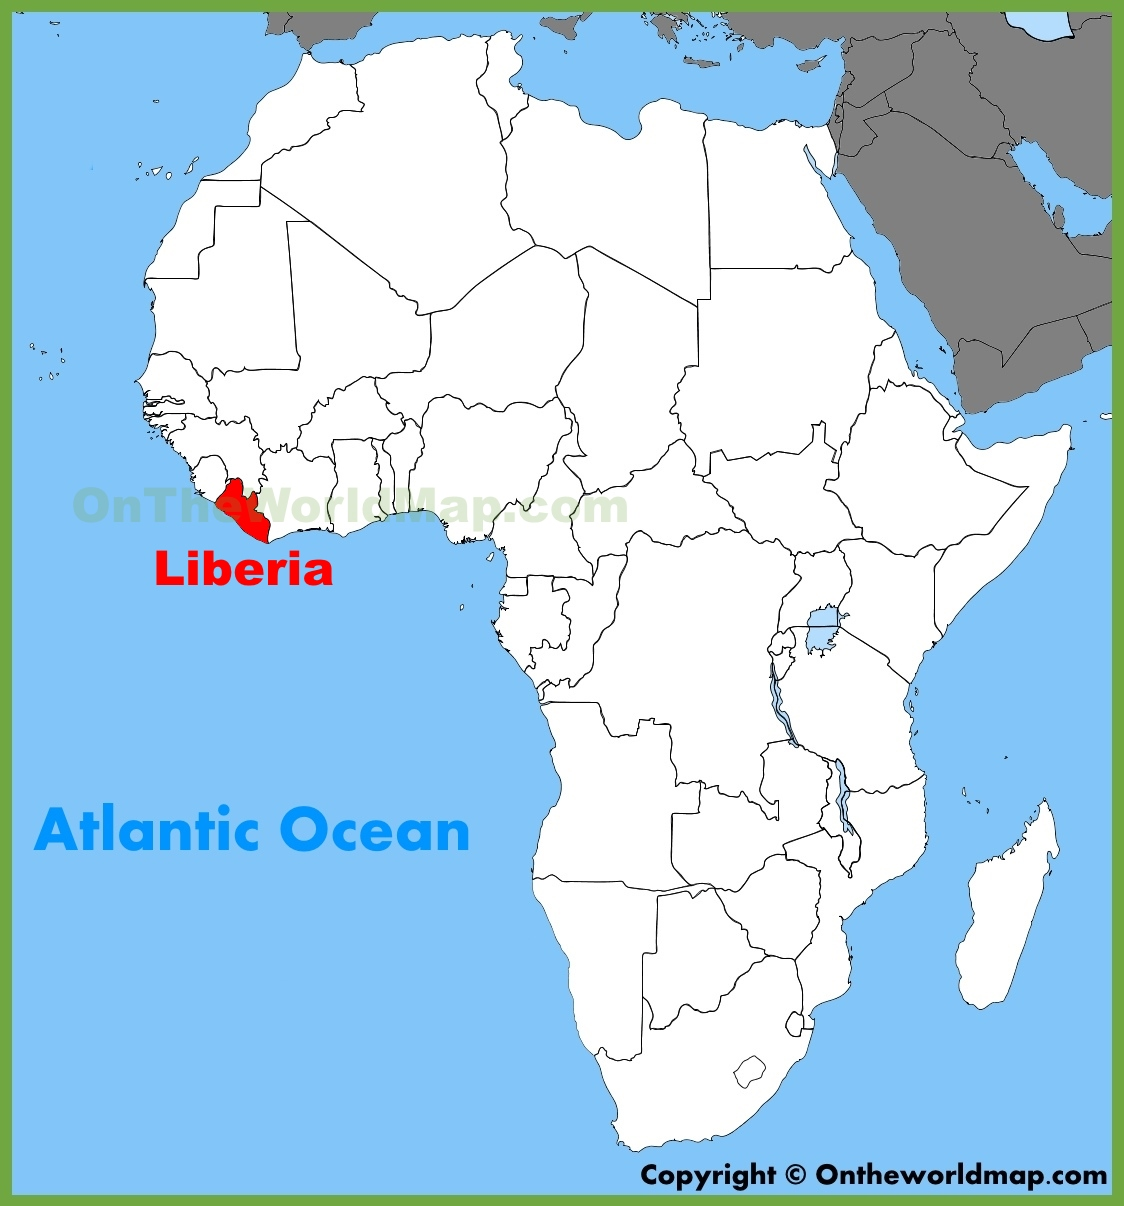 Liberia location on the Africa map